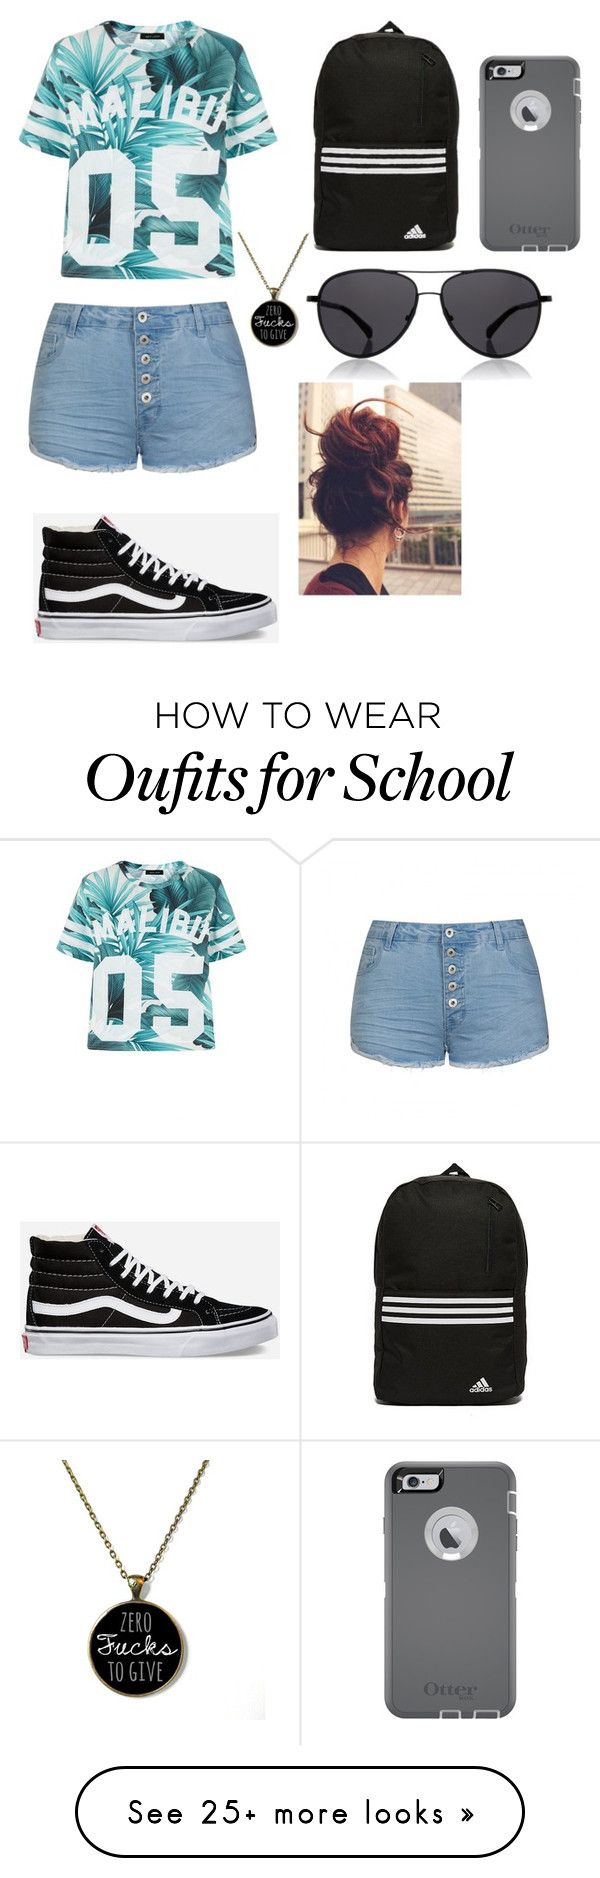 """""""School"""" by xovbx on Polyvore featuring Ally Fashion, Vans, adidas, OtterBox and The Row"""